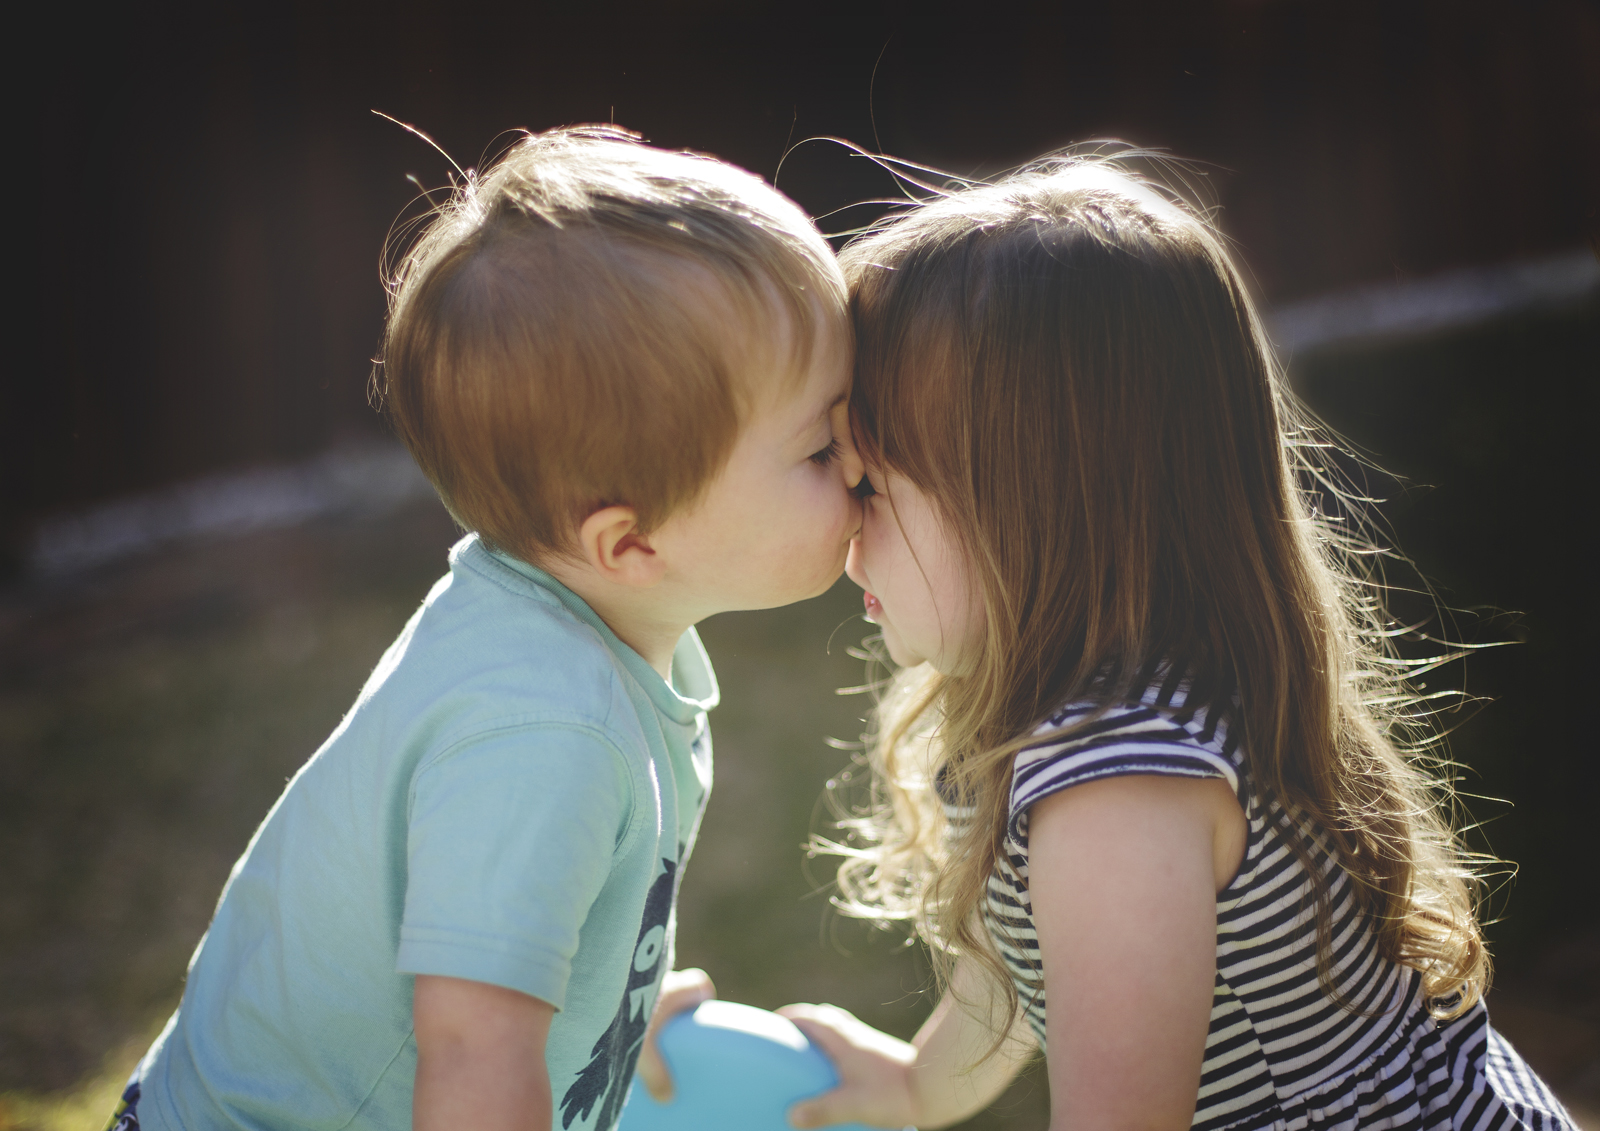 Brother & Sister kisses!